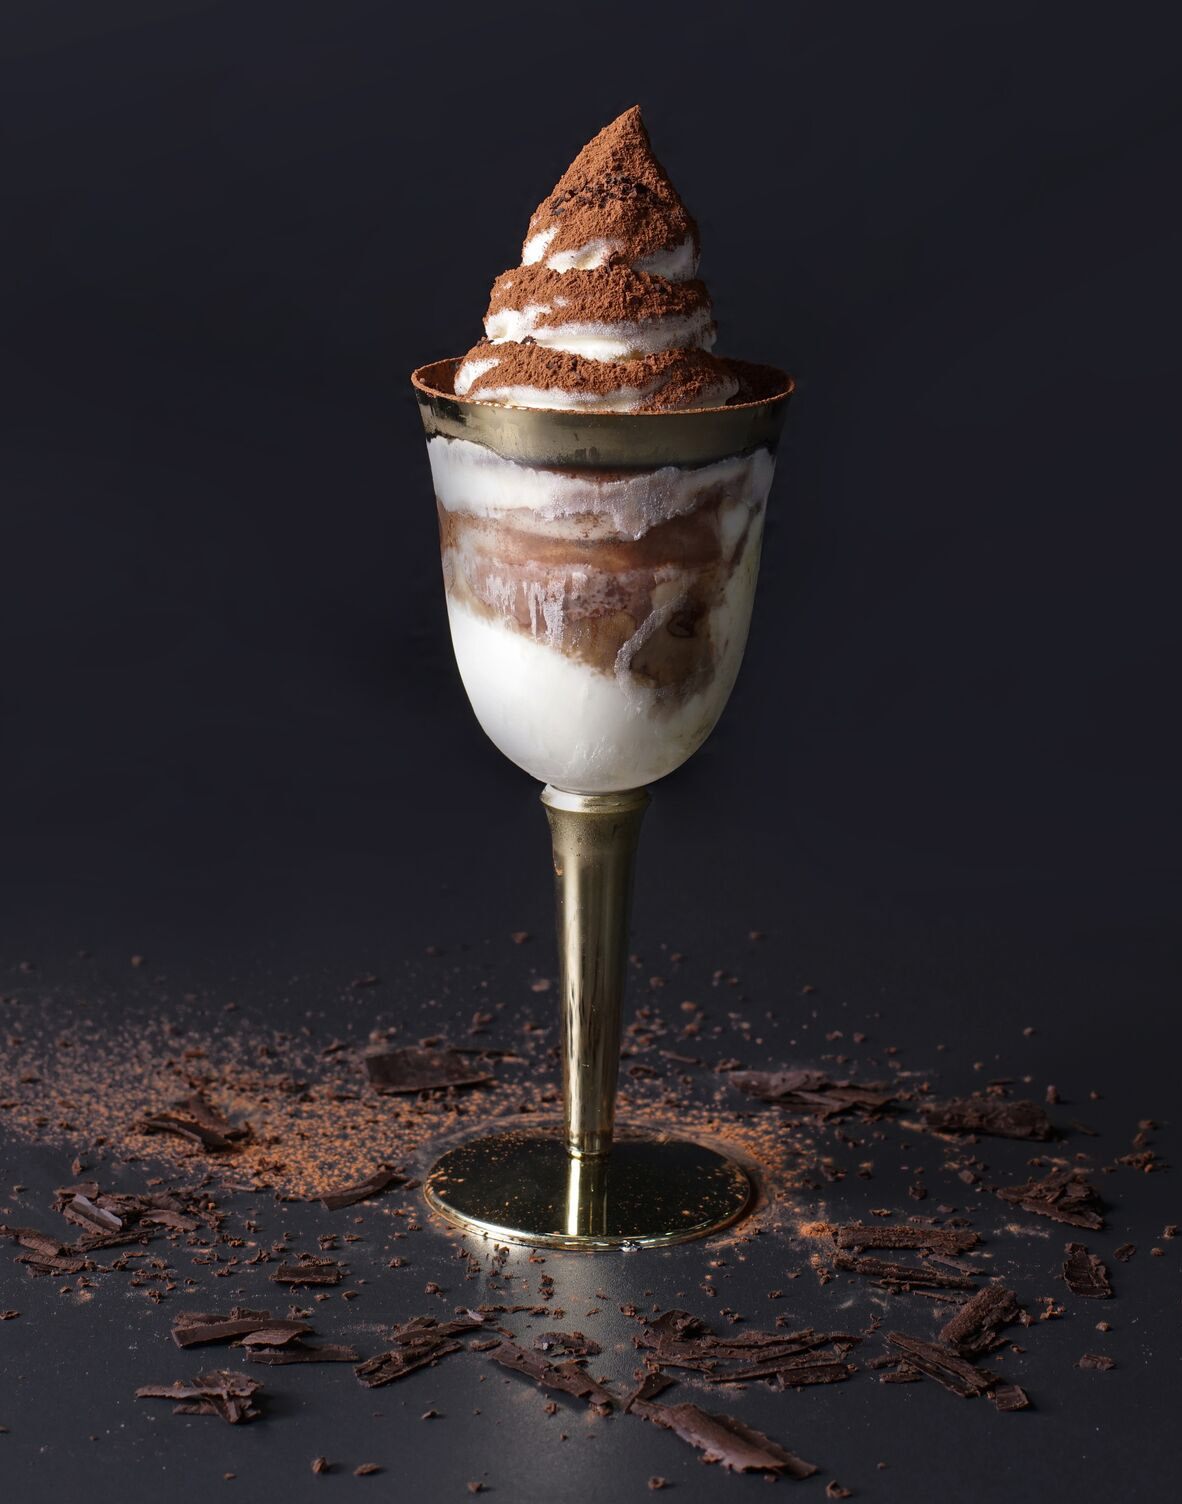 Kiss the Tiramisu's Original or Classic Tiramisu Soft-serve Ice Cream in a goblet